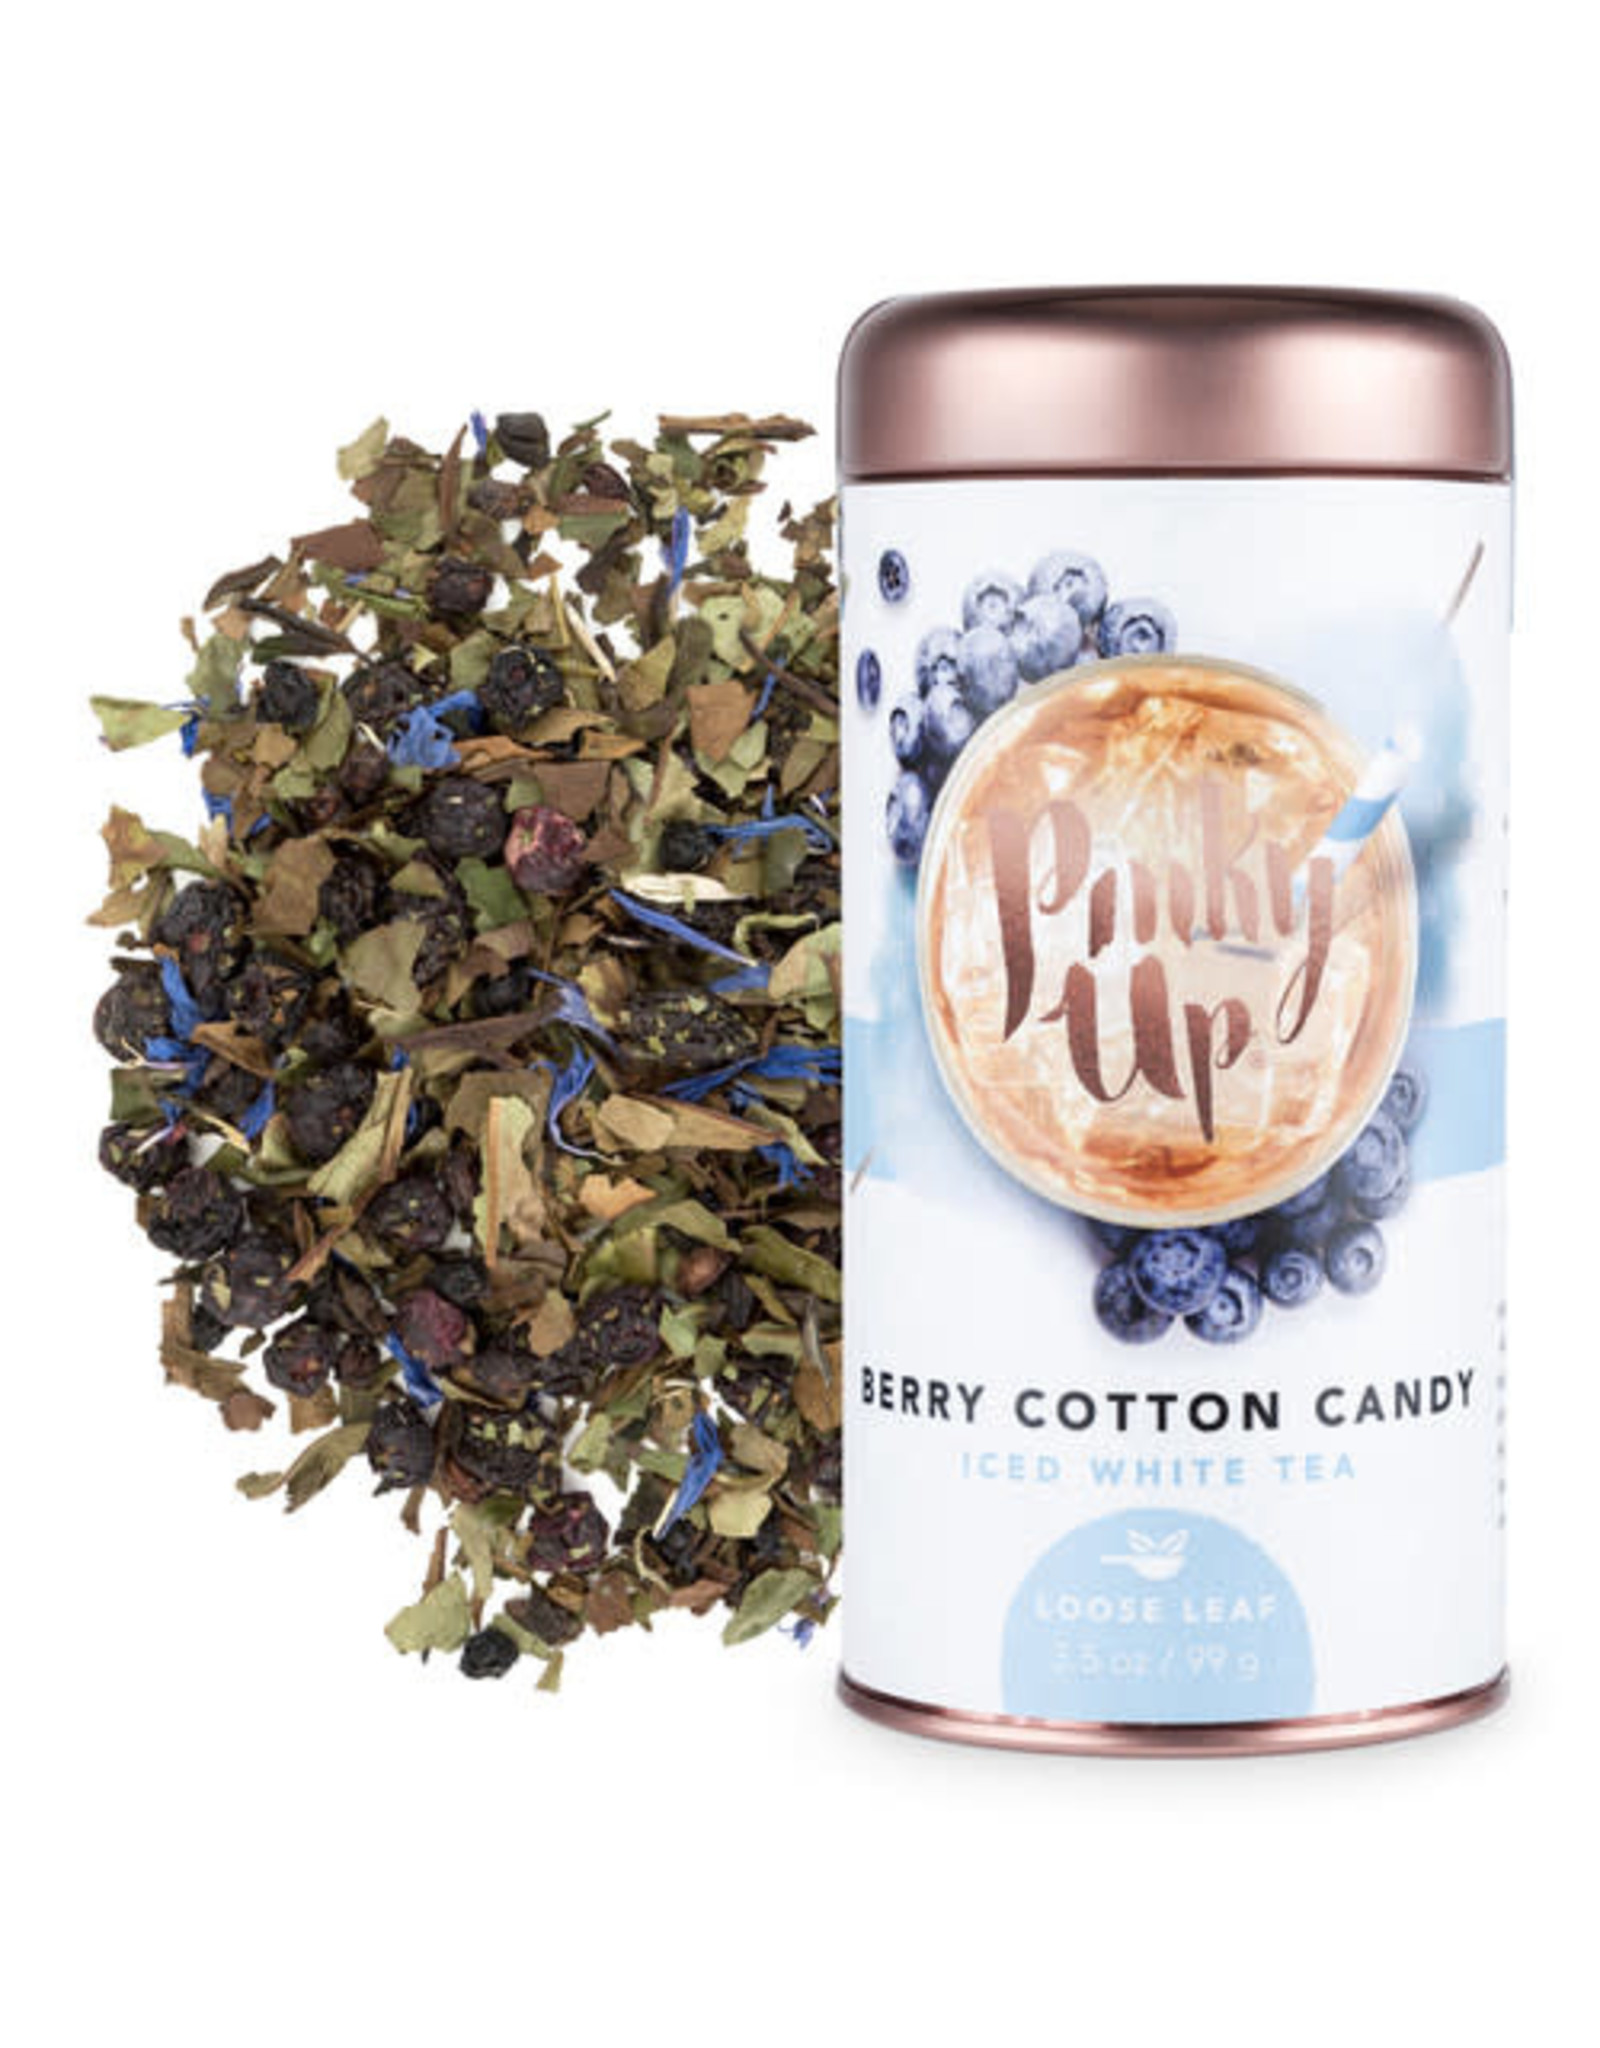 Pinky Up Berry Cotton Candy Loose Leaf Iced Tea